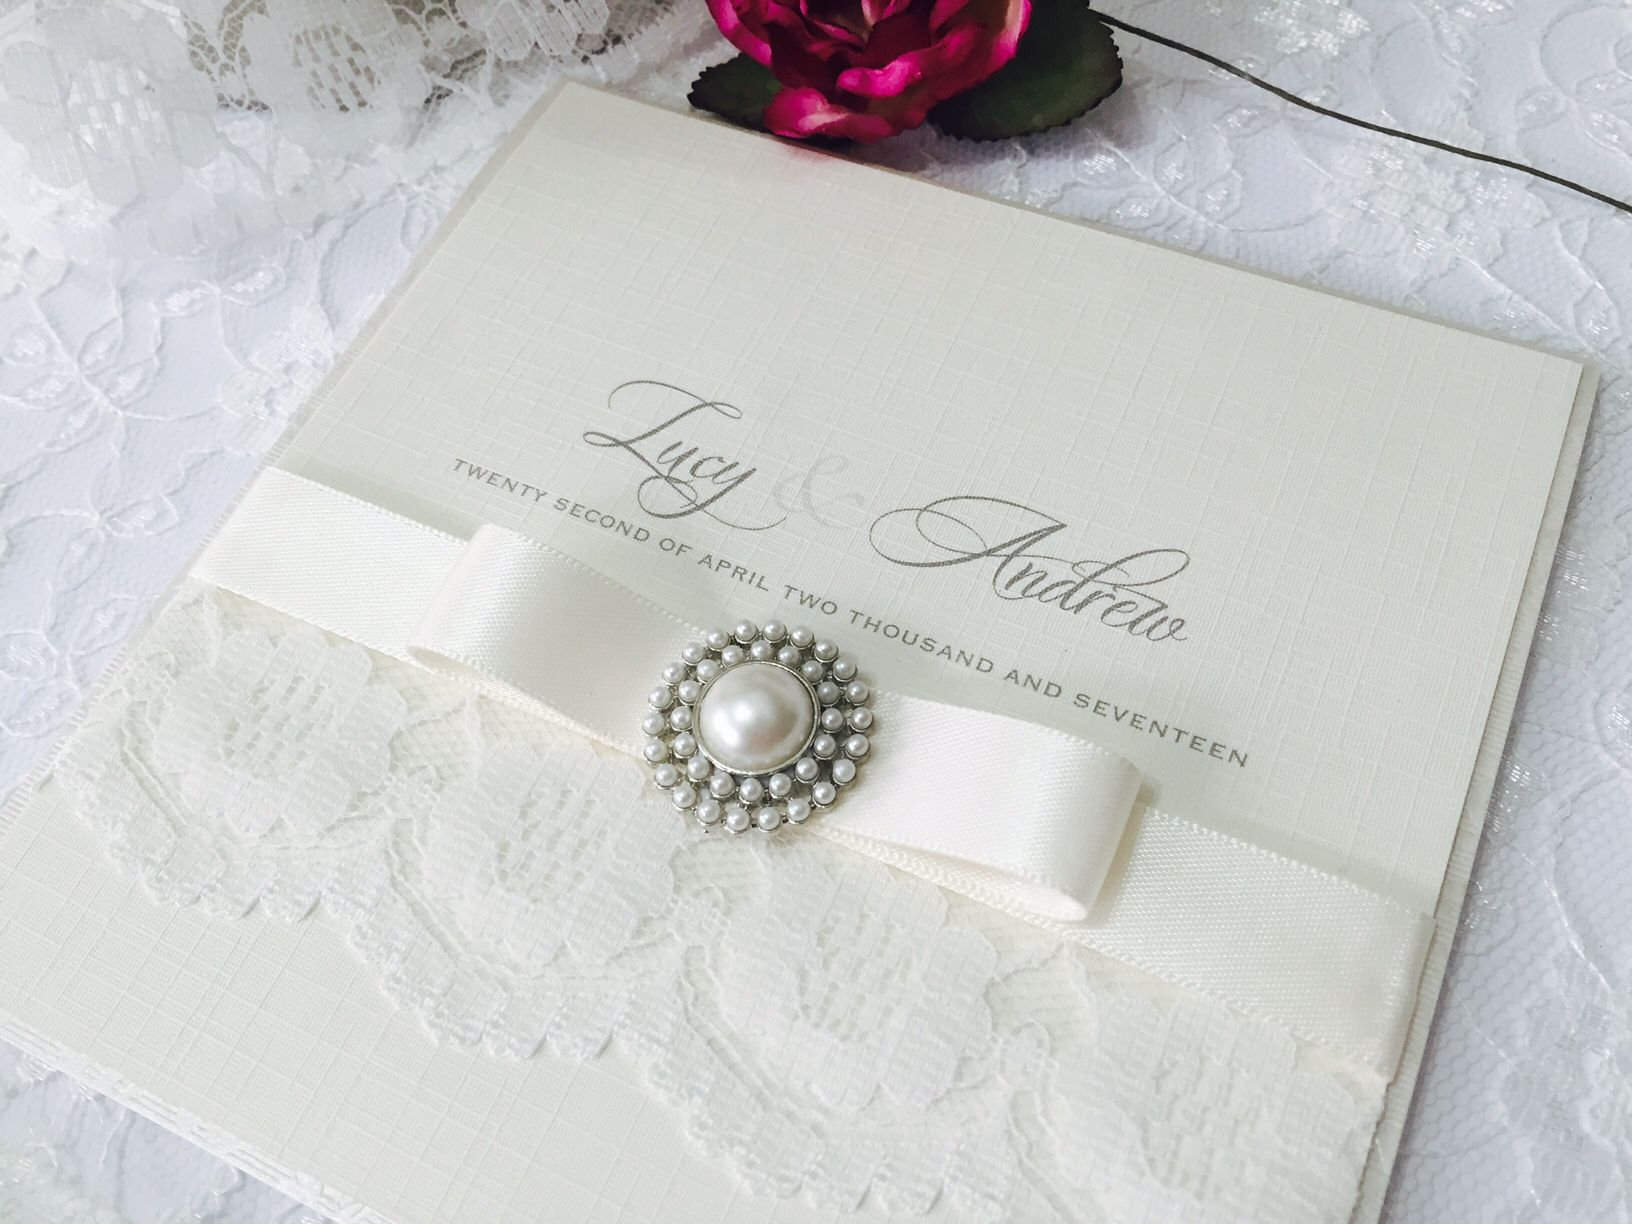 Lace and ribbon wedding invitation decorated with a pearl brooch